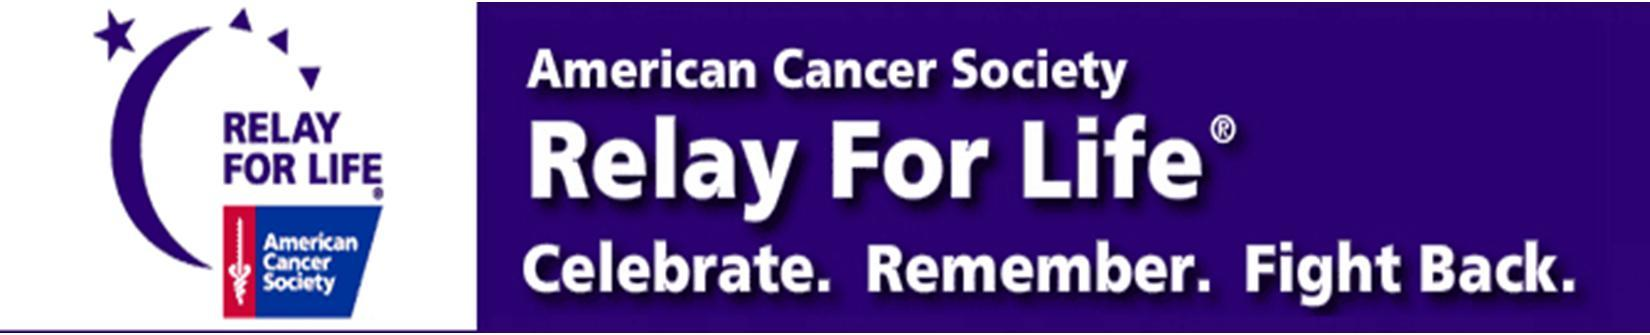 relaylogo Join Way Of Life Boot Camp team in Relay For Life!   May 17th, 2014